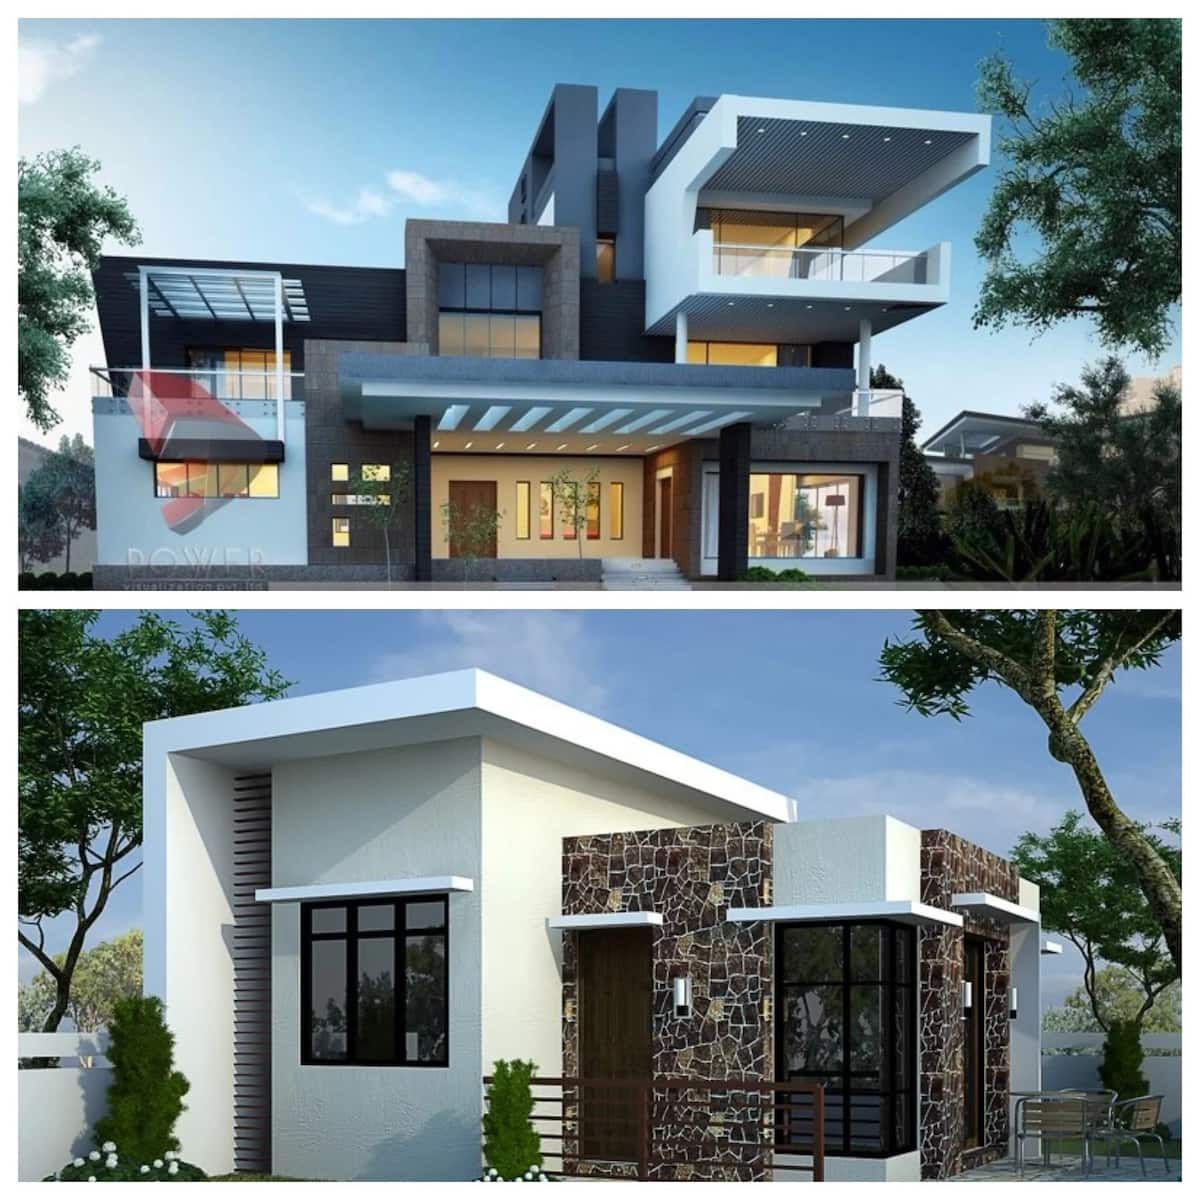 Latest bungalow designs in nigeria ▷ legit ng